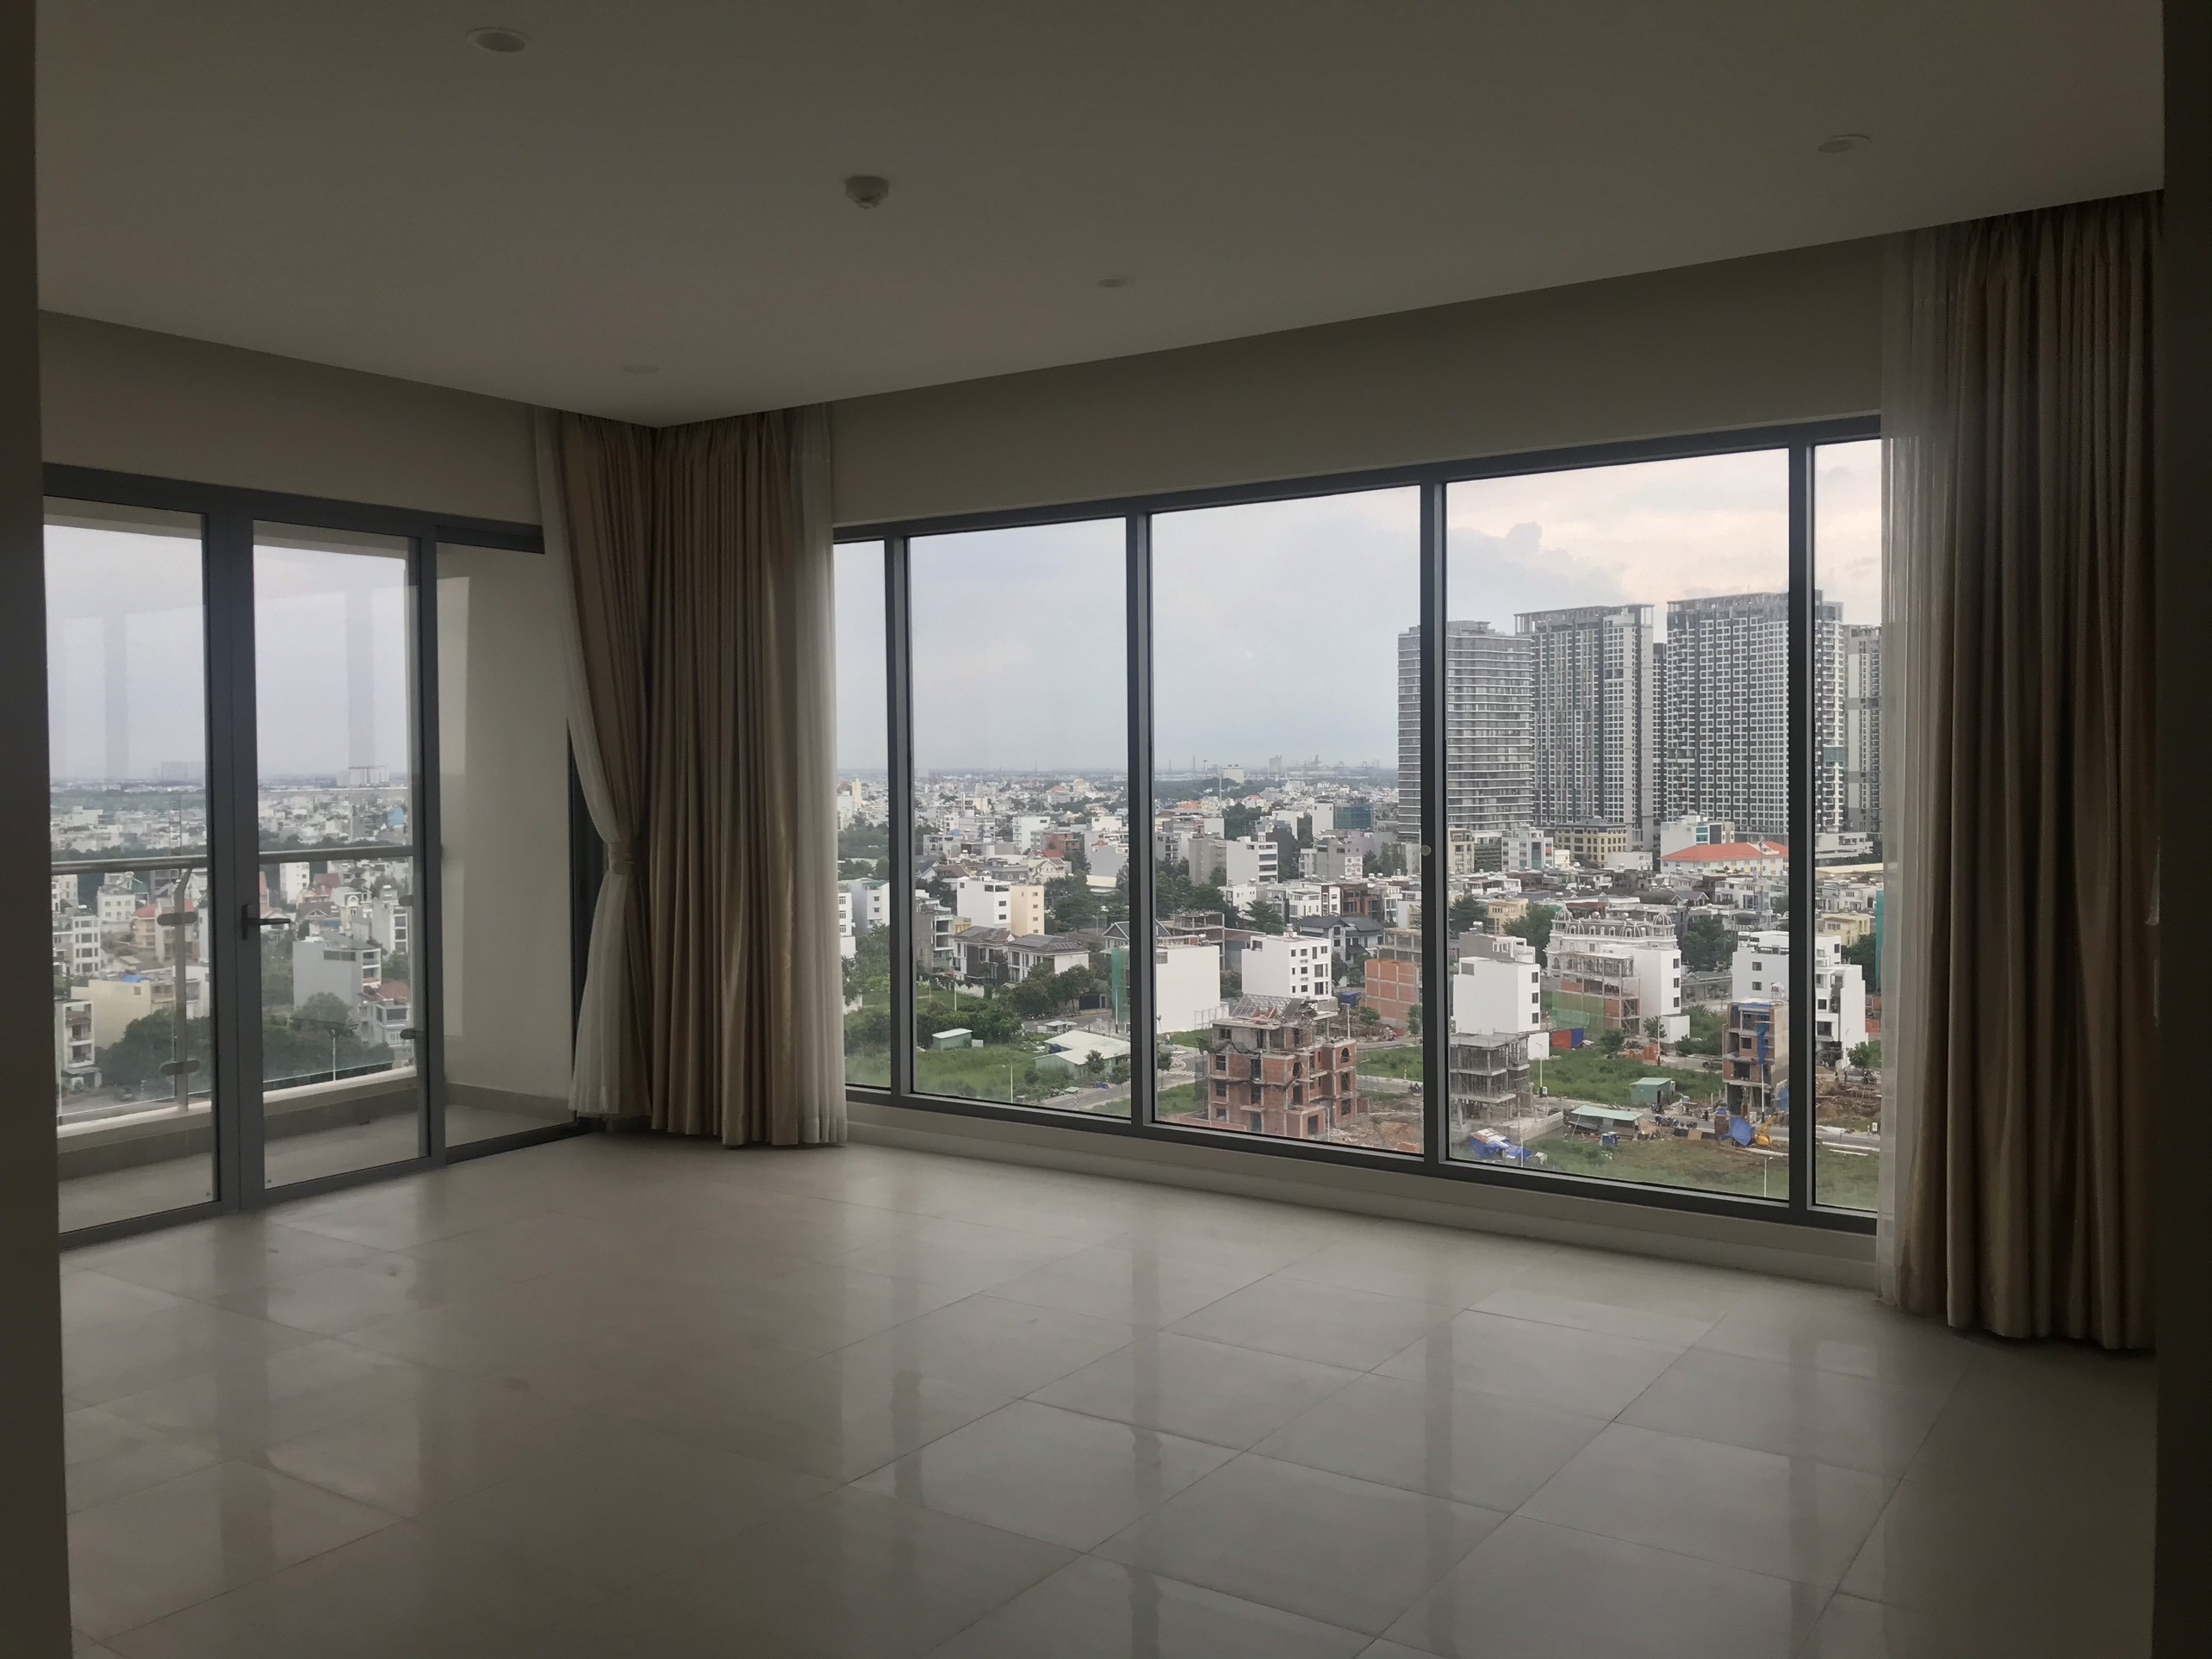 DI0292 - Diamond Island Apartment For Rent & Sale in Ho Chi Minh City - 3 bedroom